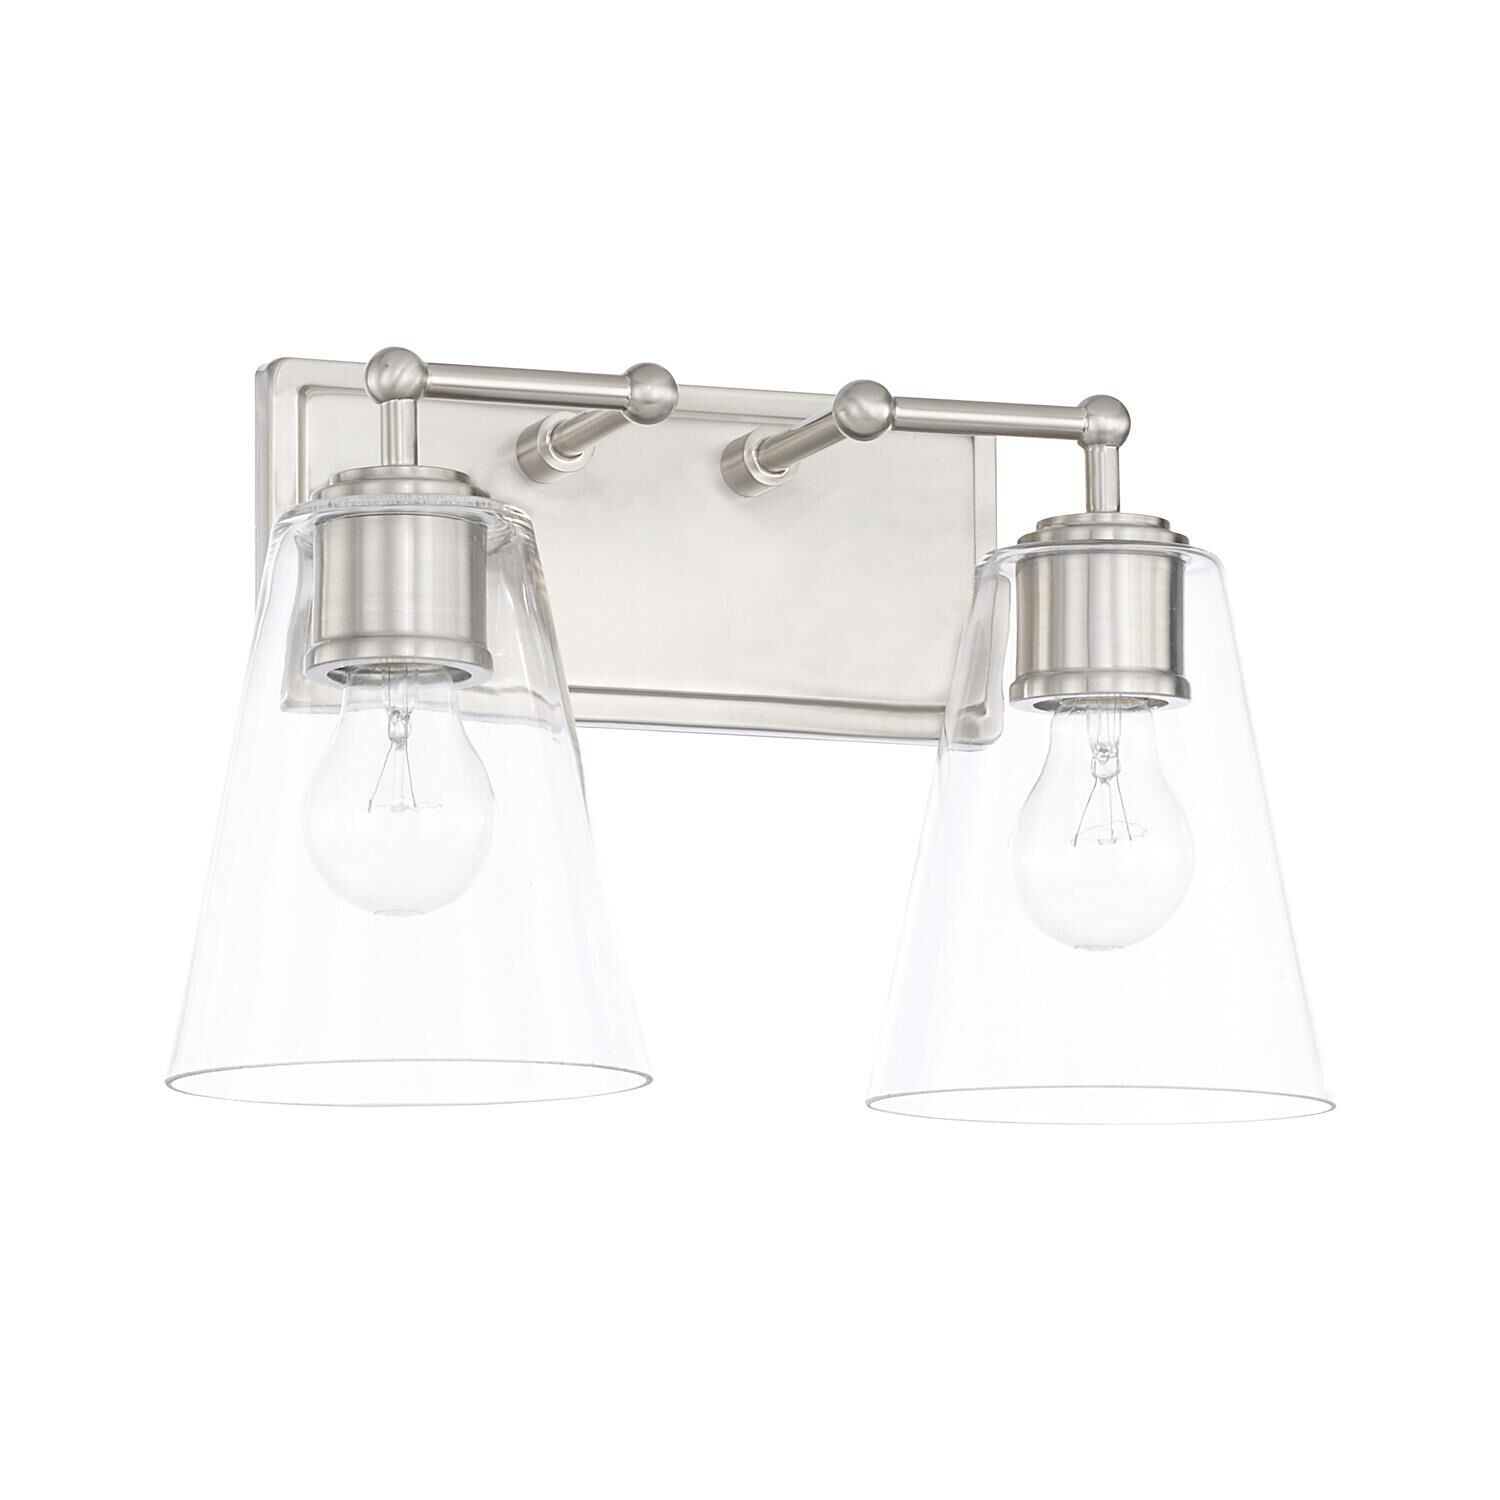 Capital Lighting Fixture Company 14 Inch 2 Light Bath Vanity Light - 121721bn-431 - Transitional